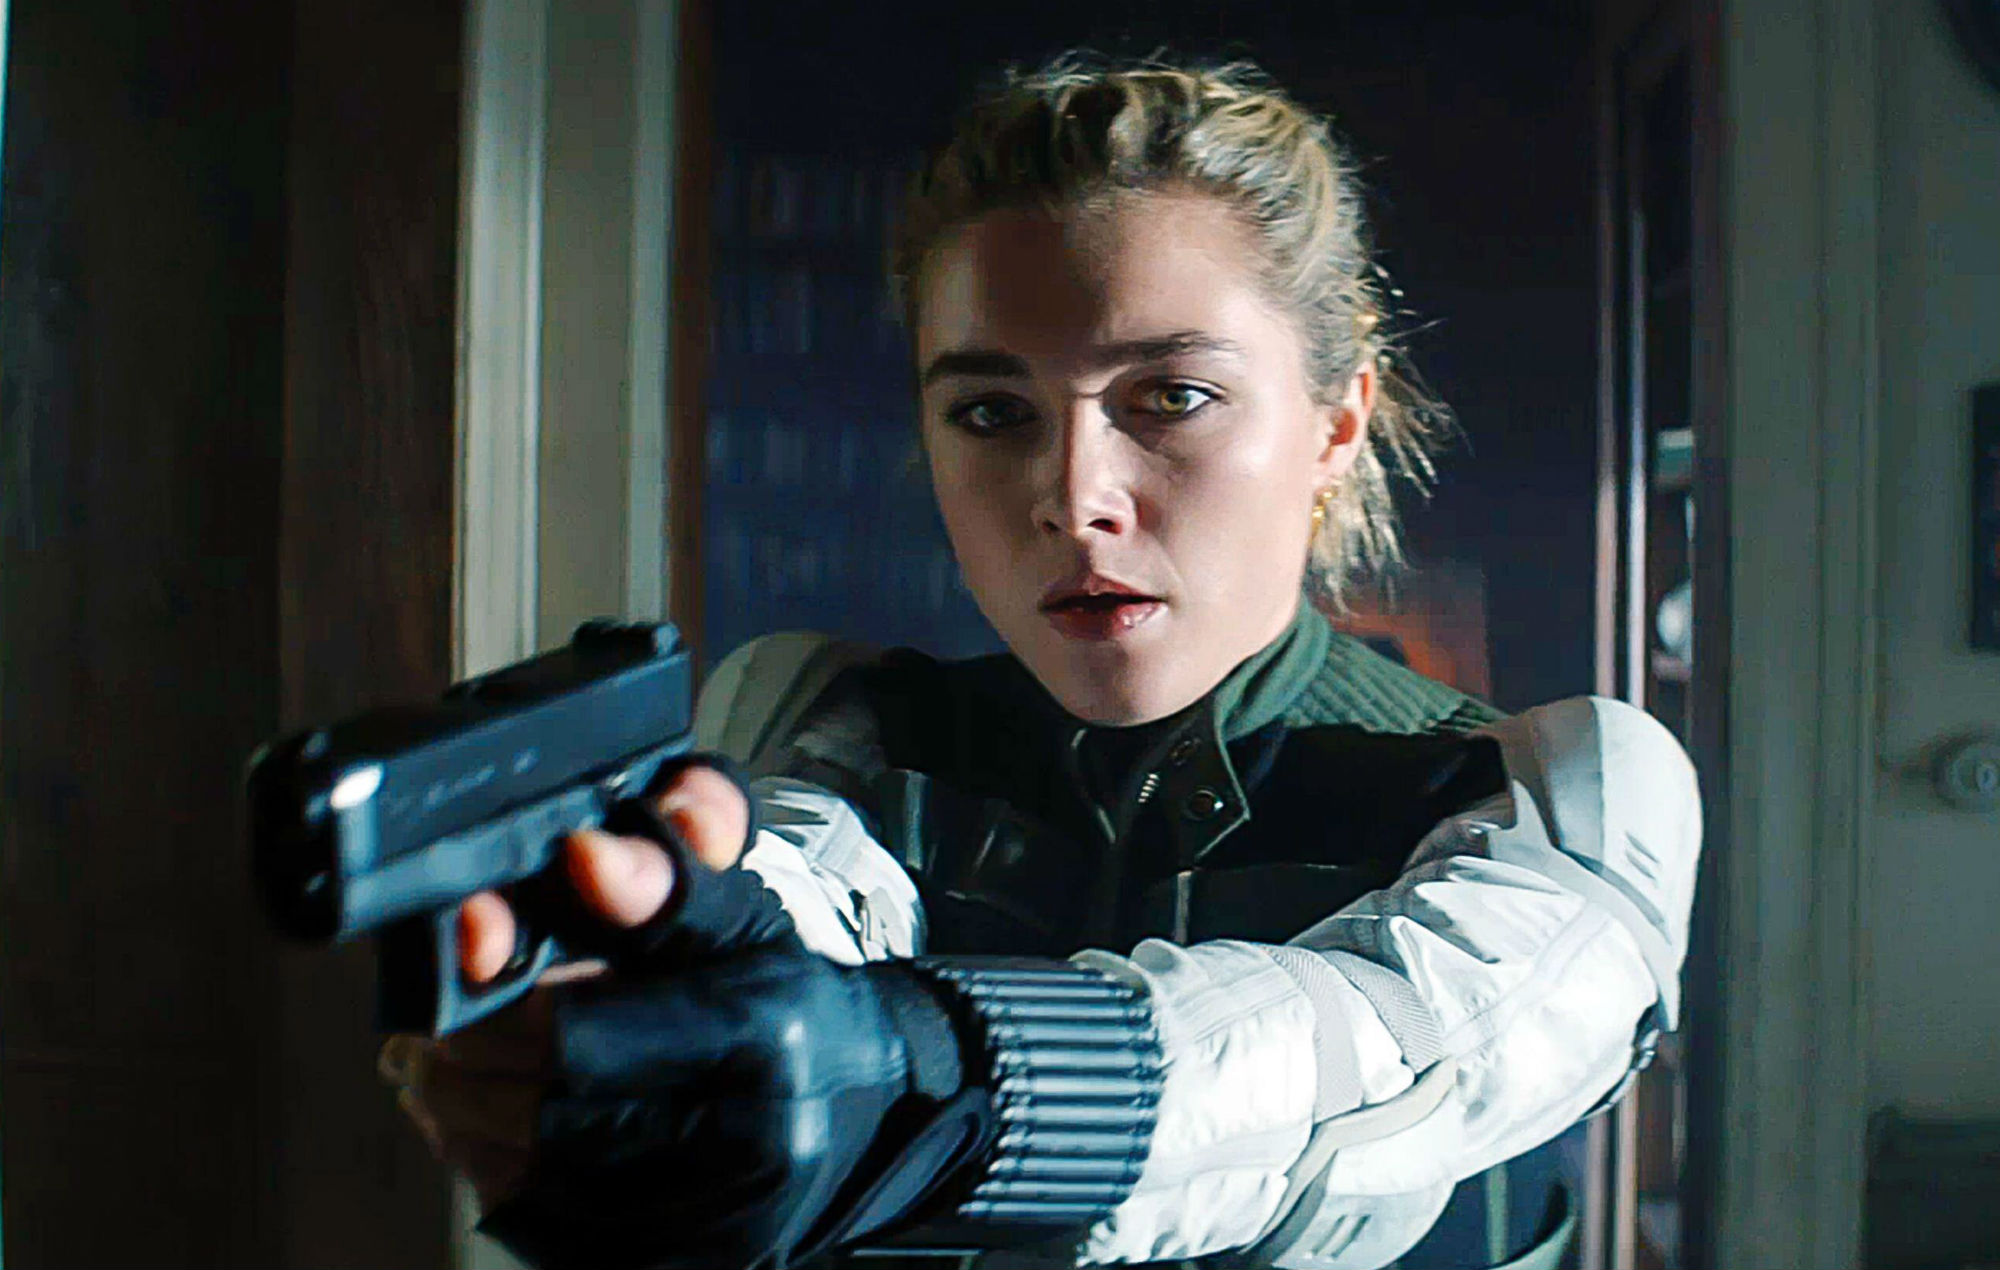 Black Widow Star Florence Pugh's Performance was Praised